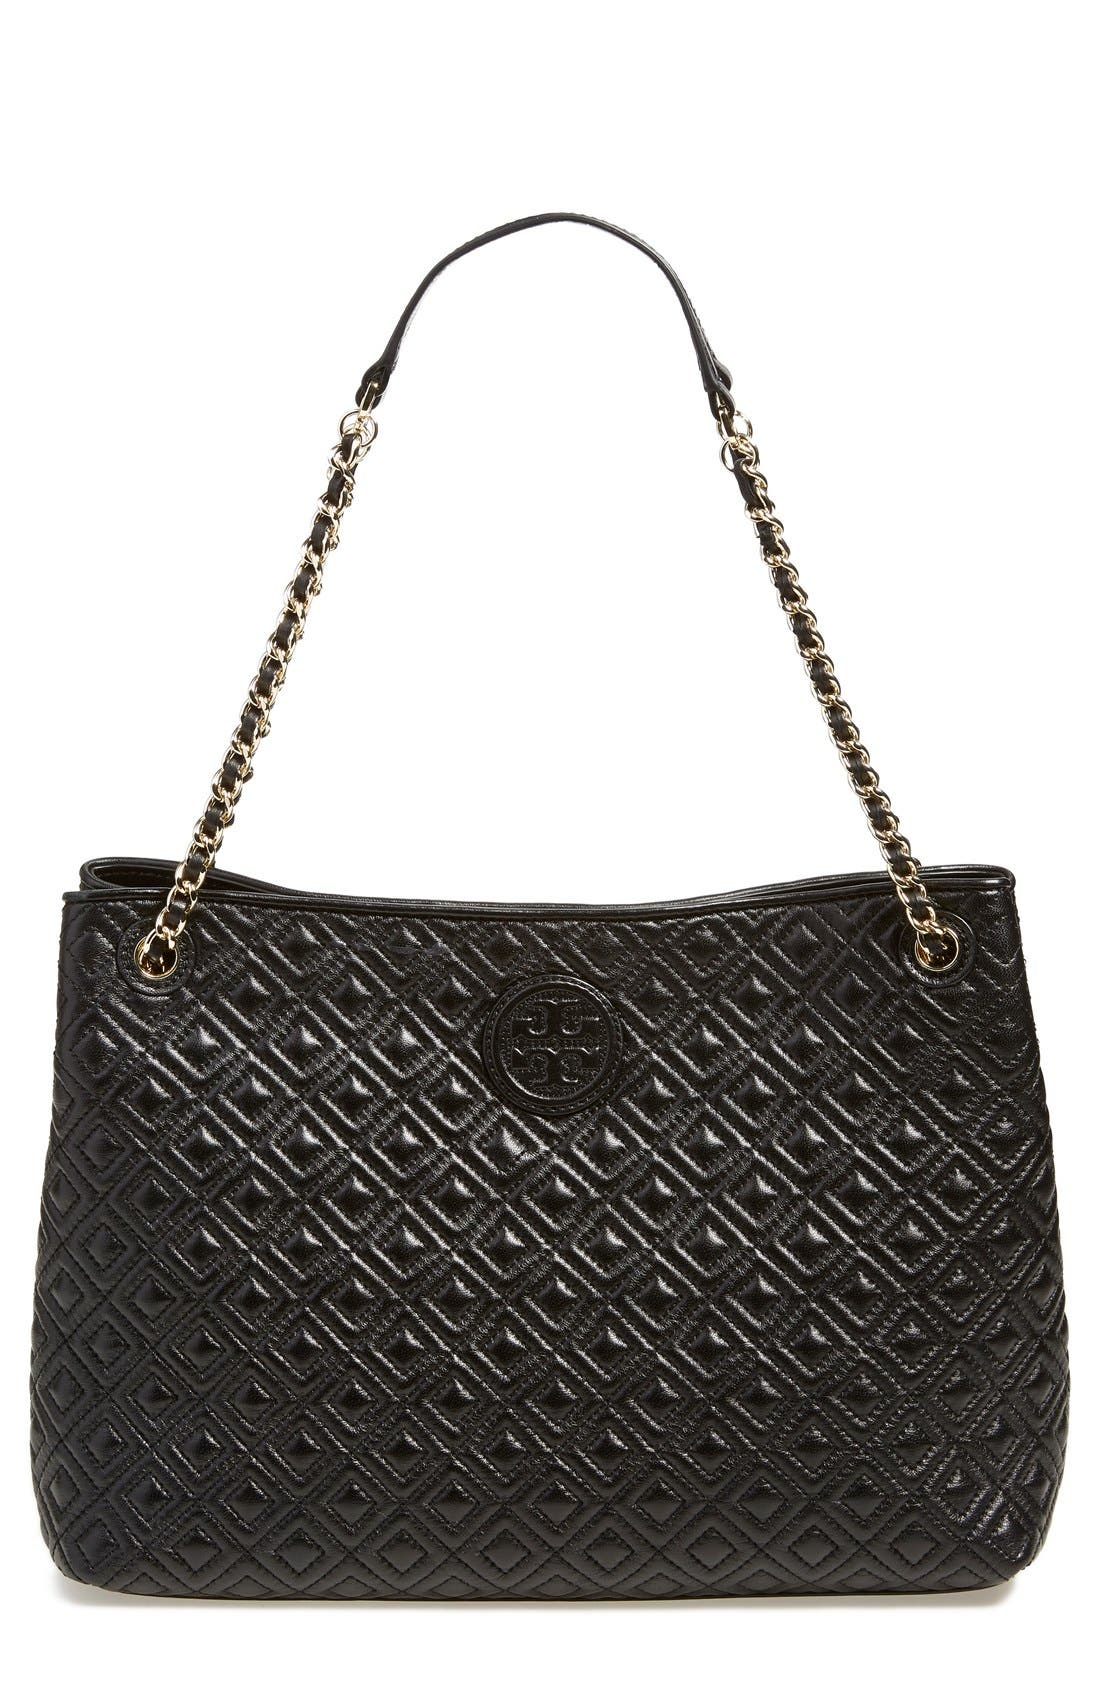 Alternate Image 1 Selected - Tory Burch 'Marion' Diamond Quilted Leather Tote